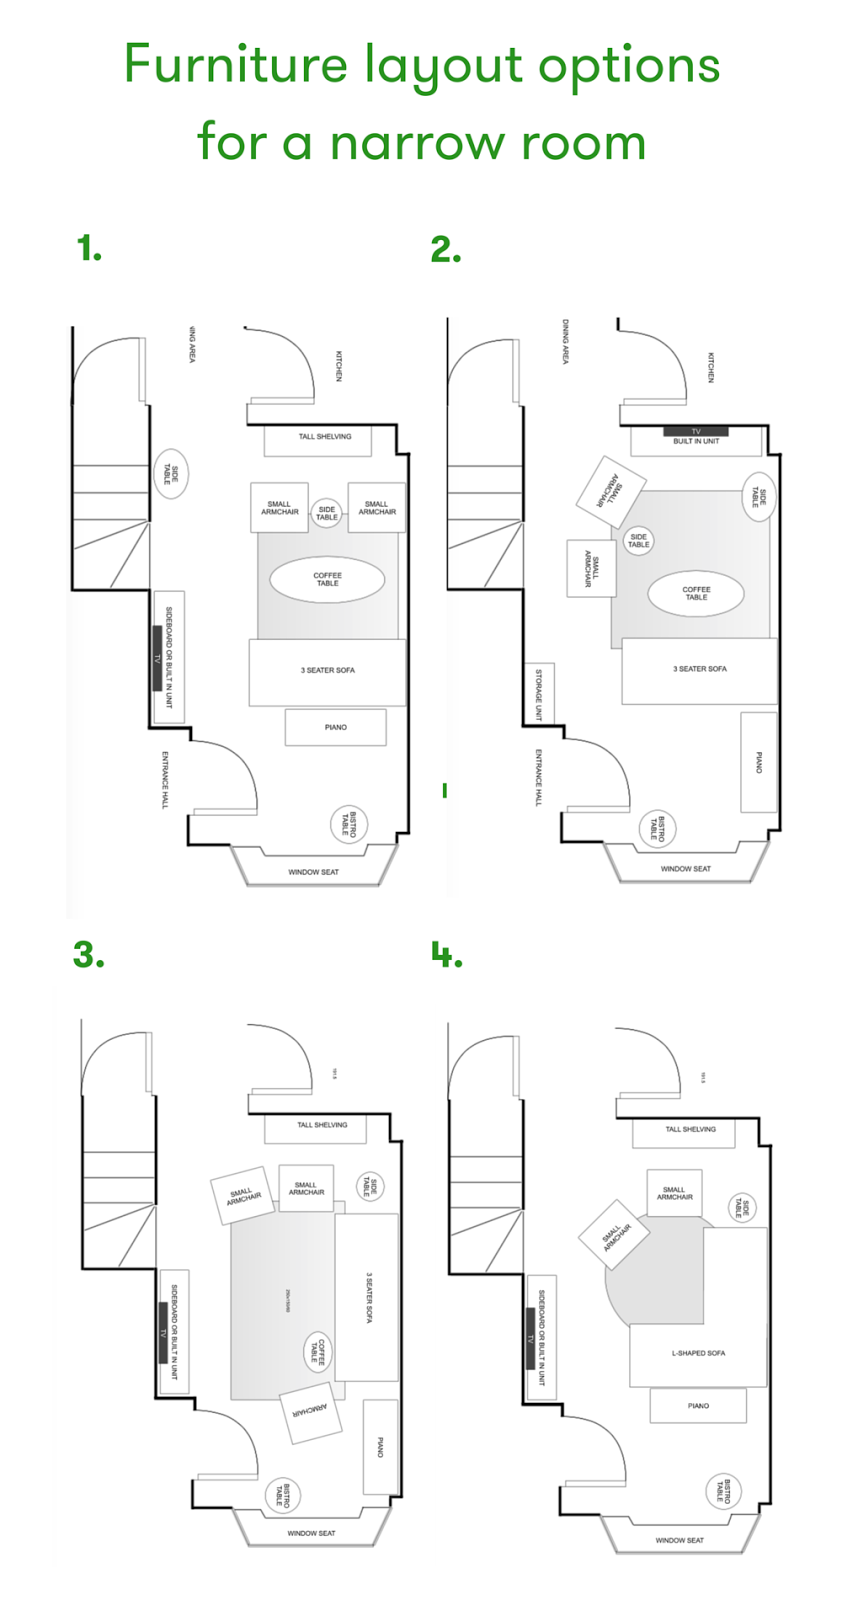 How to layout a narrow living room | Design Seeker